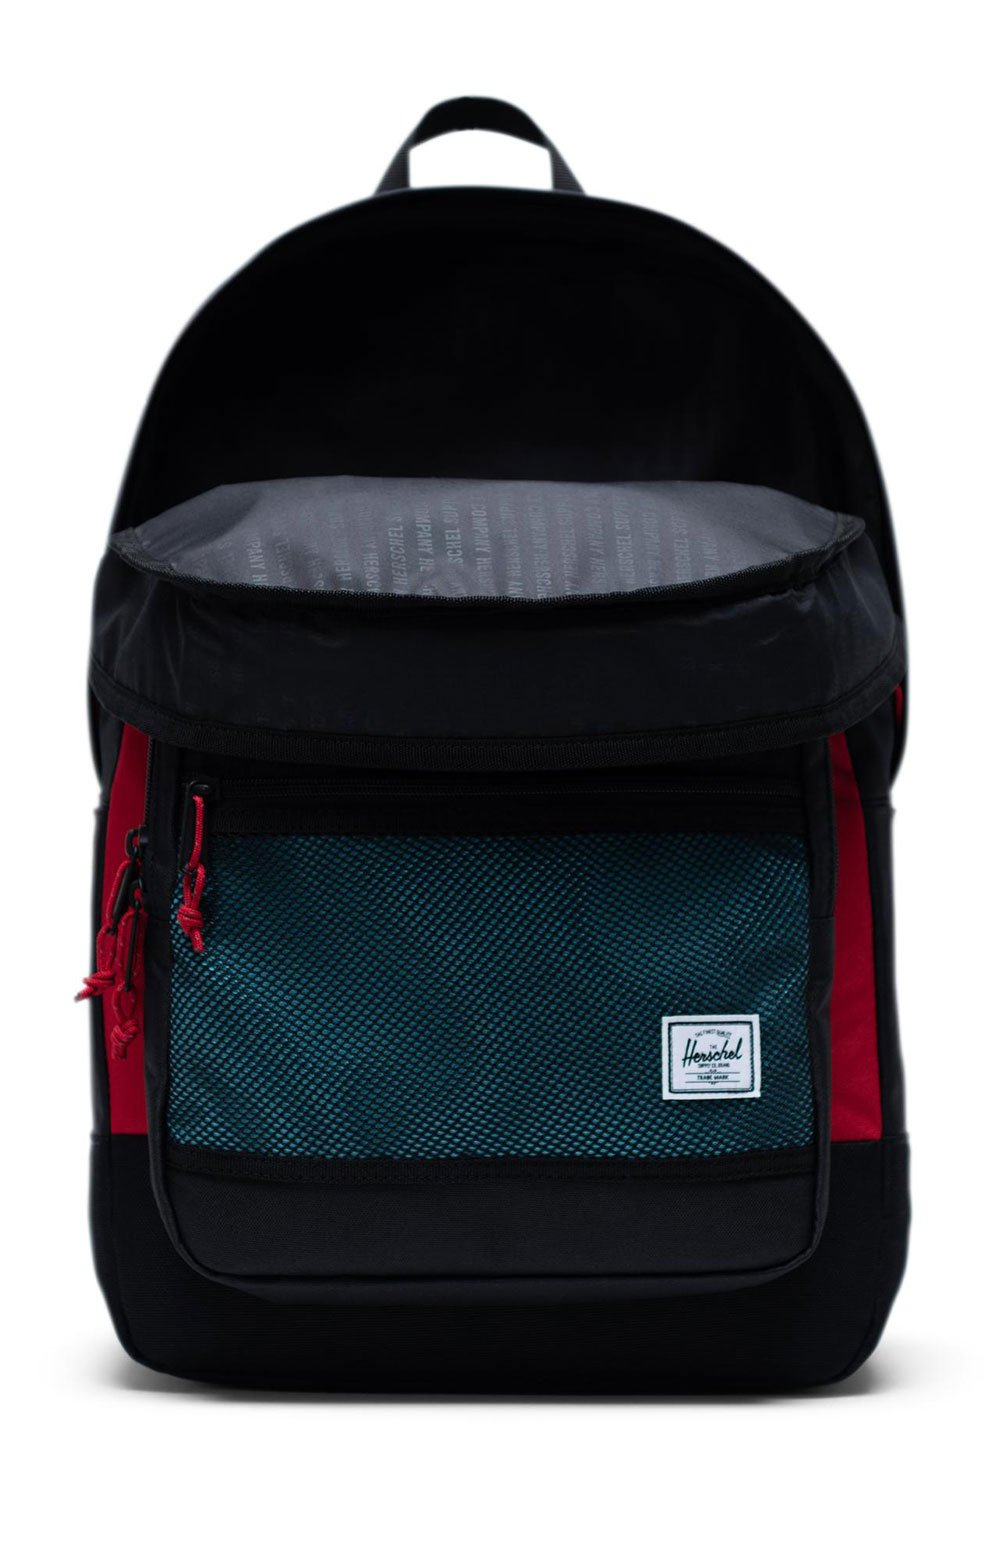 Athletics Kaine Backpack - Black/Red/Bachelor Button 2